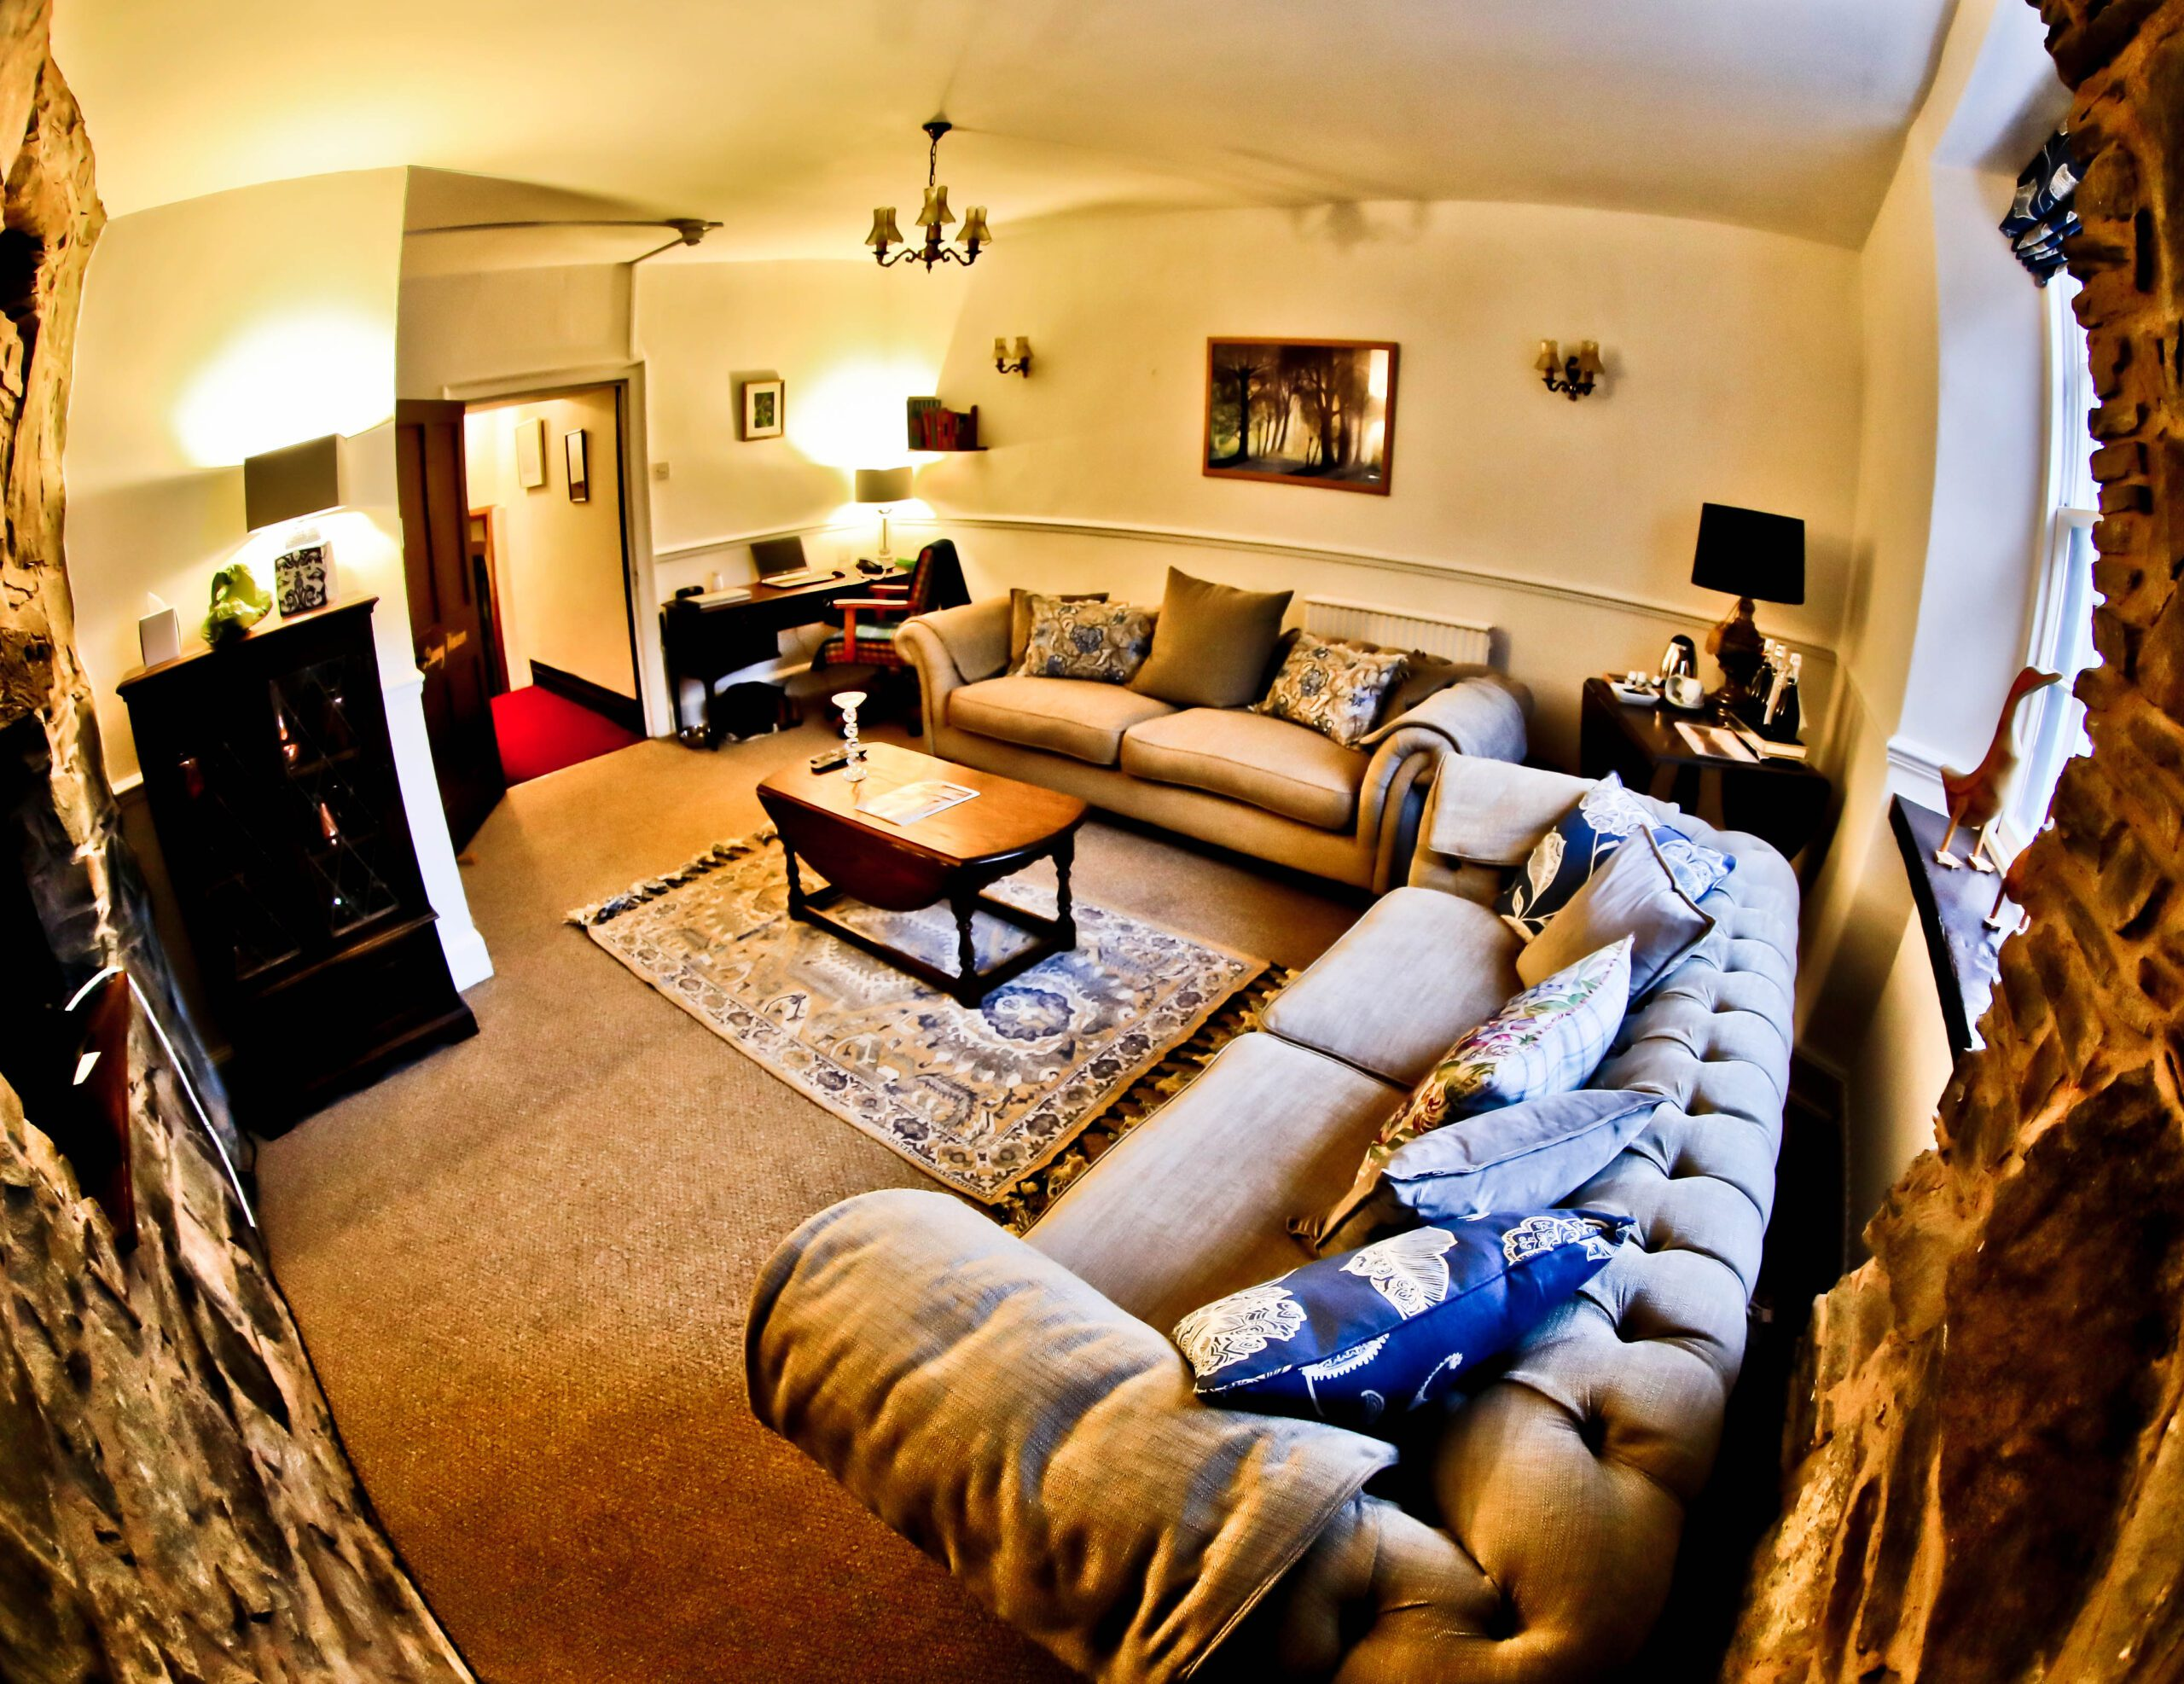 Image of a living room at the Bunny Warren Suite, one of the most special places to stay in Snowdonia.